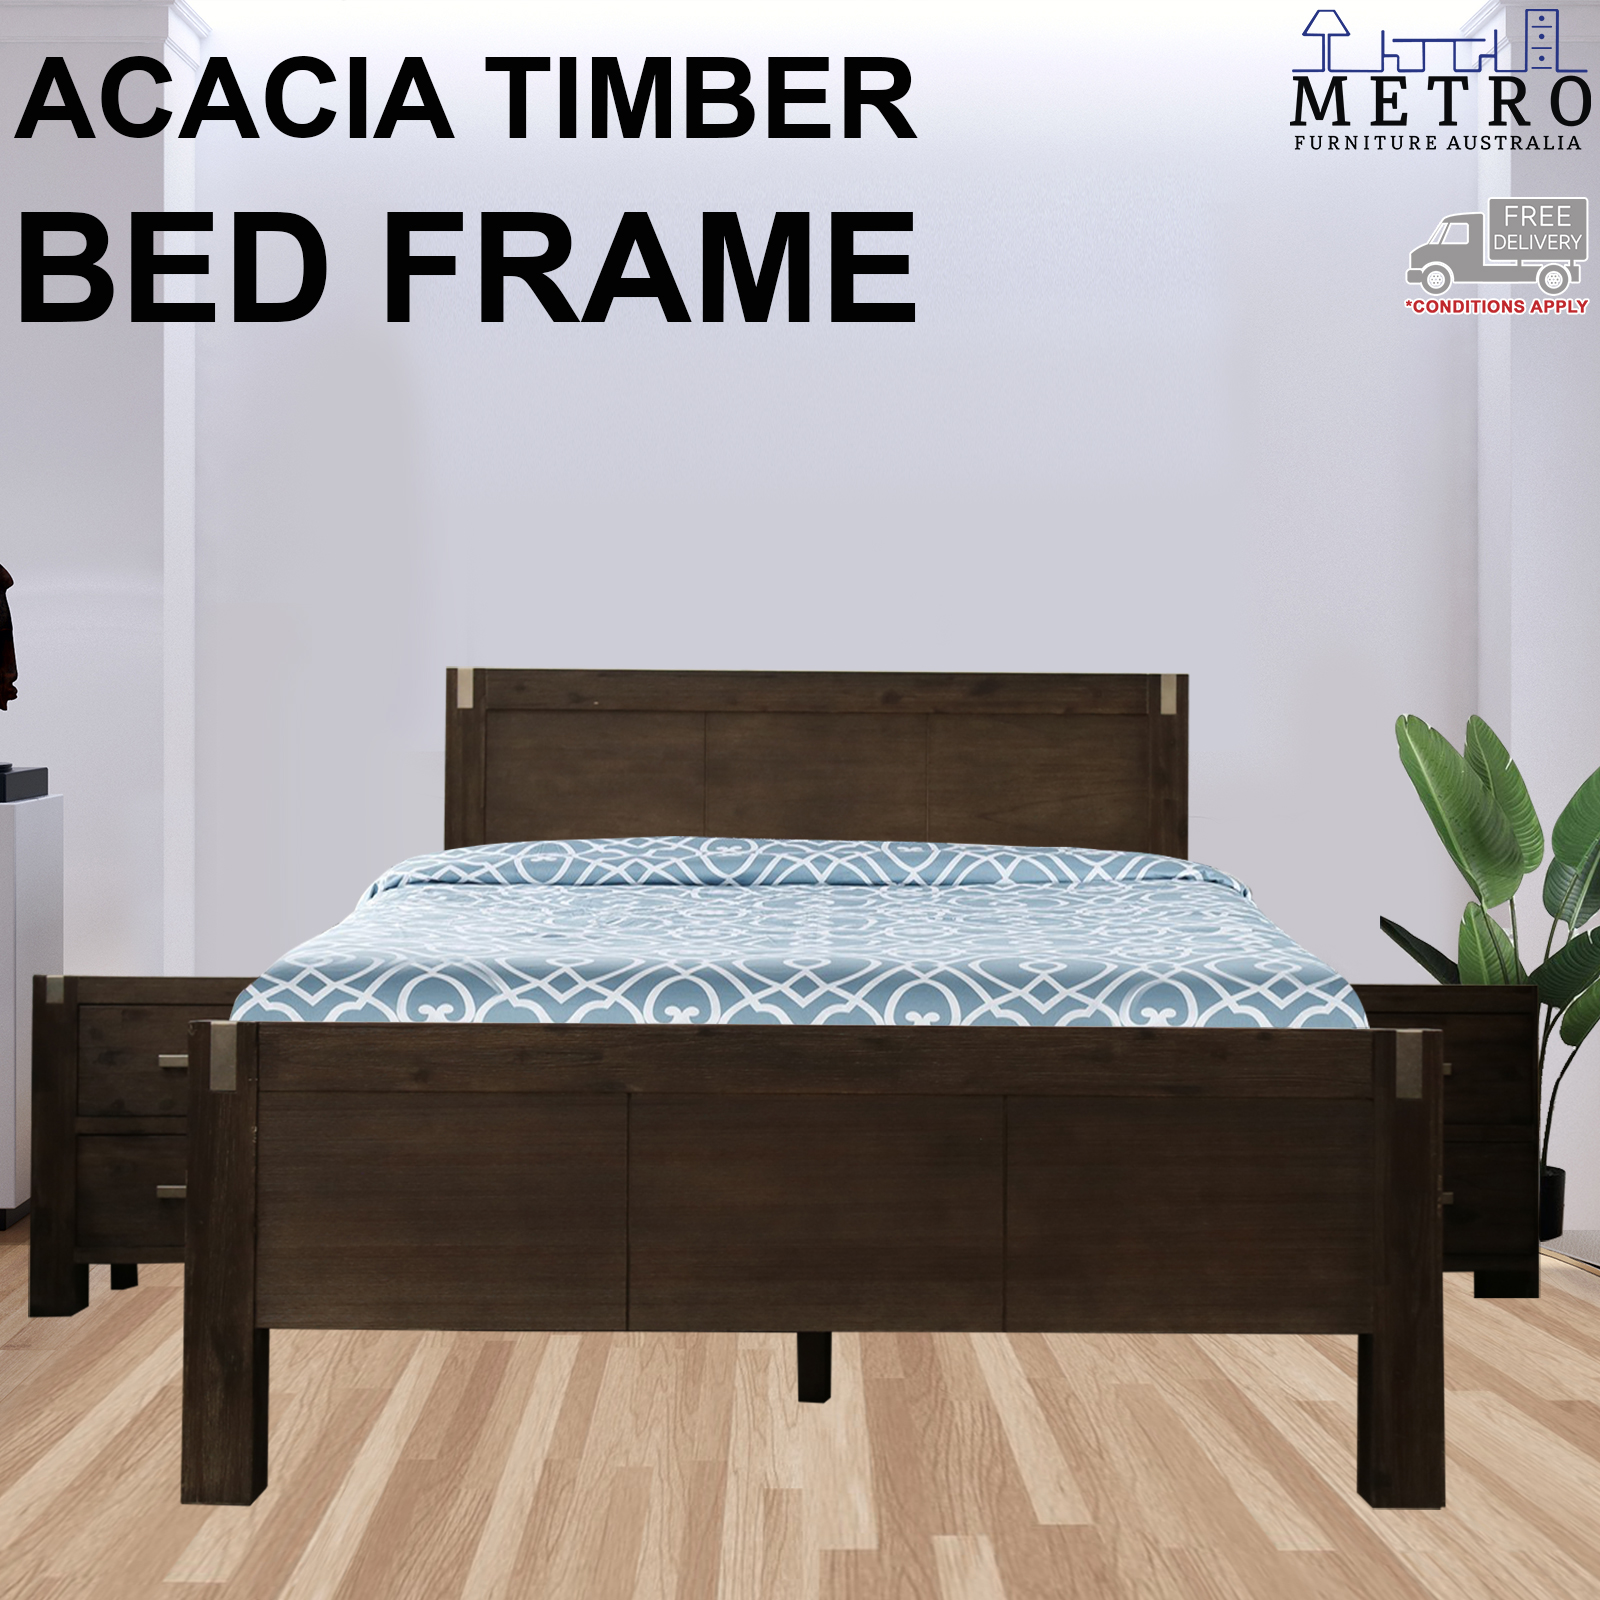 New Luxury Solid Acacia Timber Portland Wenge Color King Bed Frame